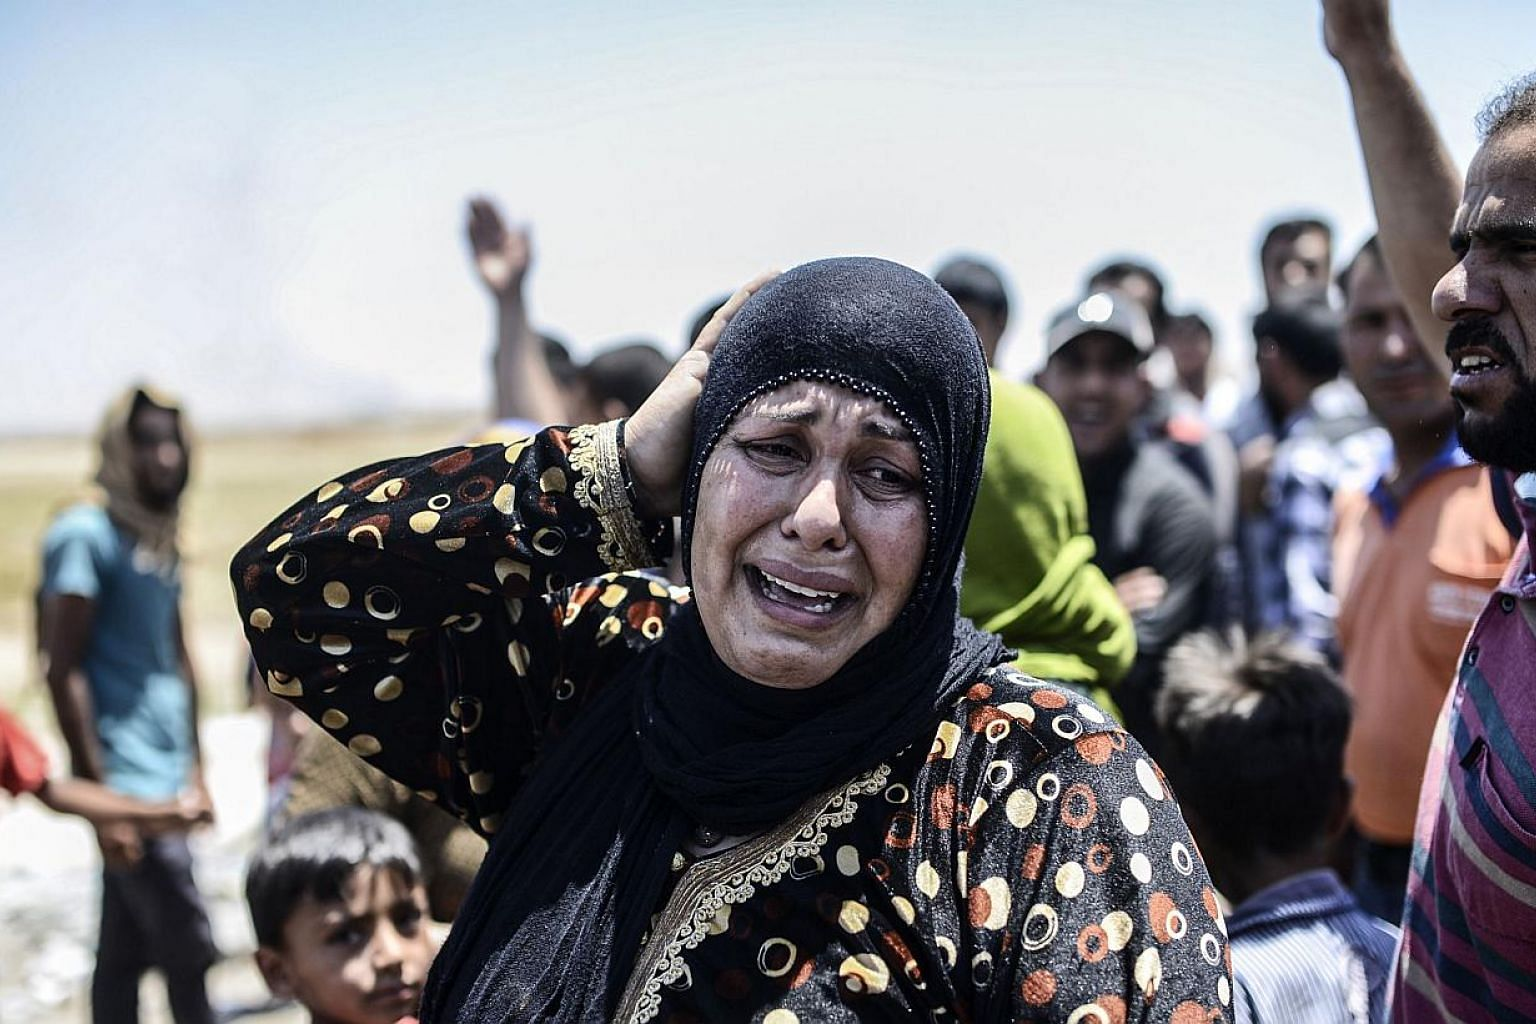 A Syrian woman cries after an airstrike hit the eastern part of the Syrian town of Tal Abyad at the Turkish crossing of Akcakale in the southeast Sanliurfa province on June 14, 2015.Kurdish forces pressed their advance on the strategic militant